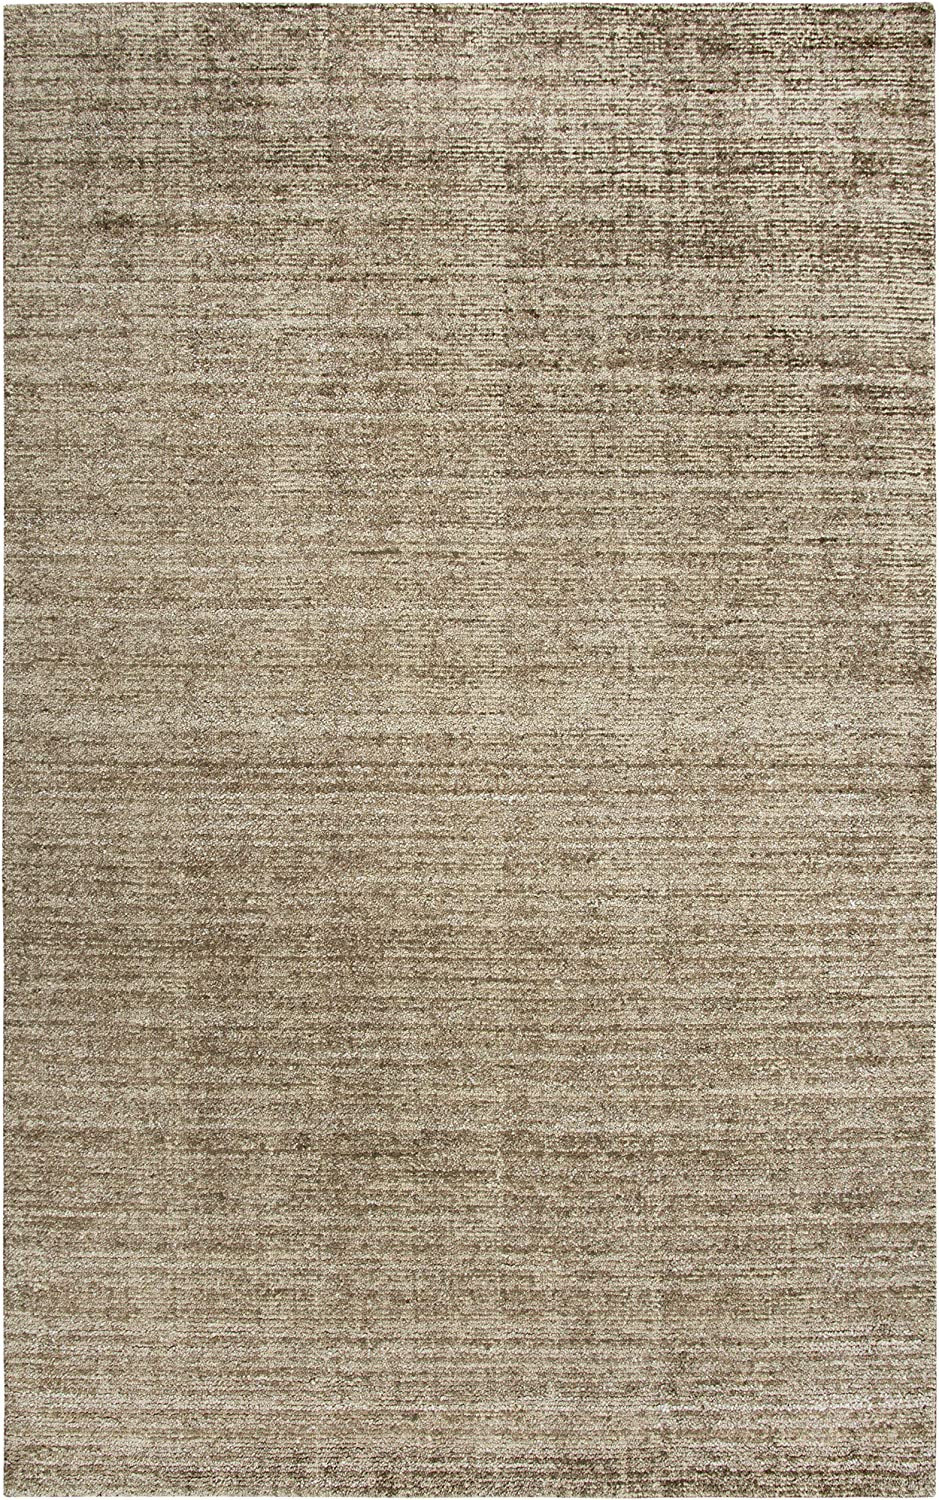 Rizzy Home Grand Haven Collection Wool/Viscose Area Rug, 9' x 12', Lt. Brown/Gray/Rust/Blue